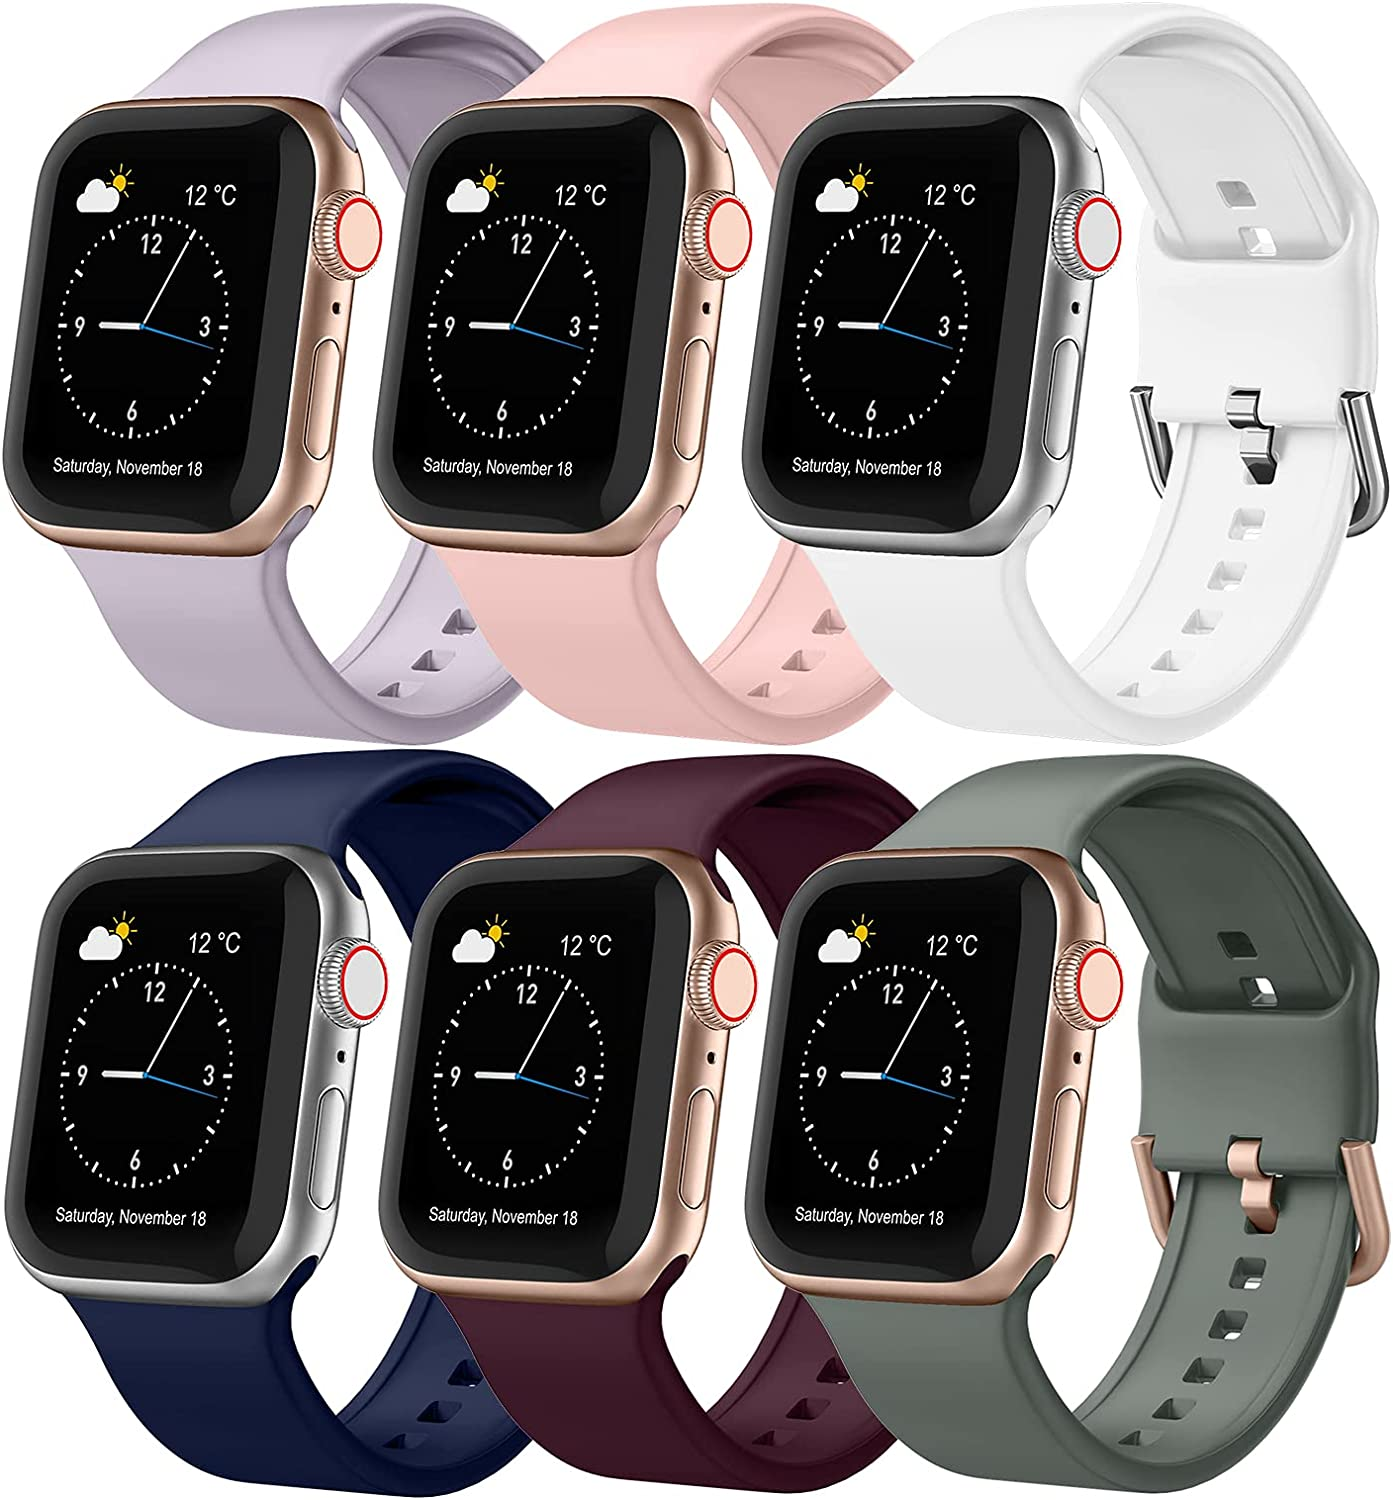 CCnutri 6 Pack Bands Compatible for Apple Watch Band 38mm 40mm 42mm 44mm, Soft Silicone Sport Straps with Classic Buckle for Women Men Compatible with iWatch Series SE 6 5 4 3 2 1, 42mm/44mm